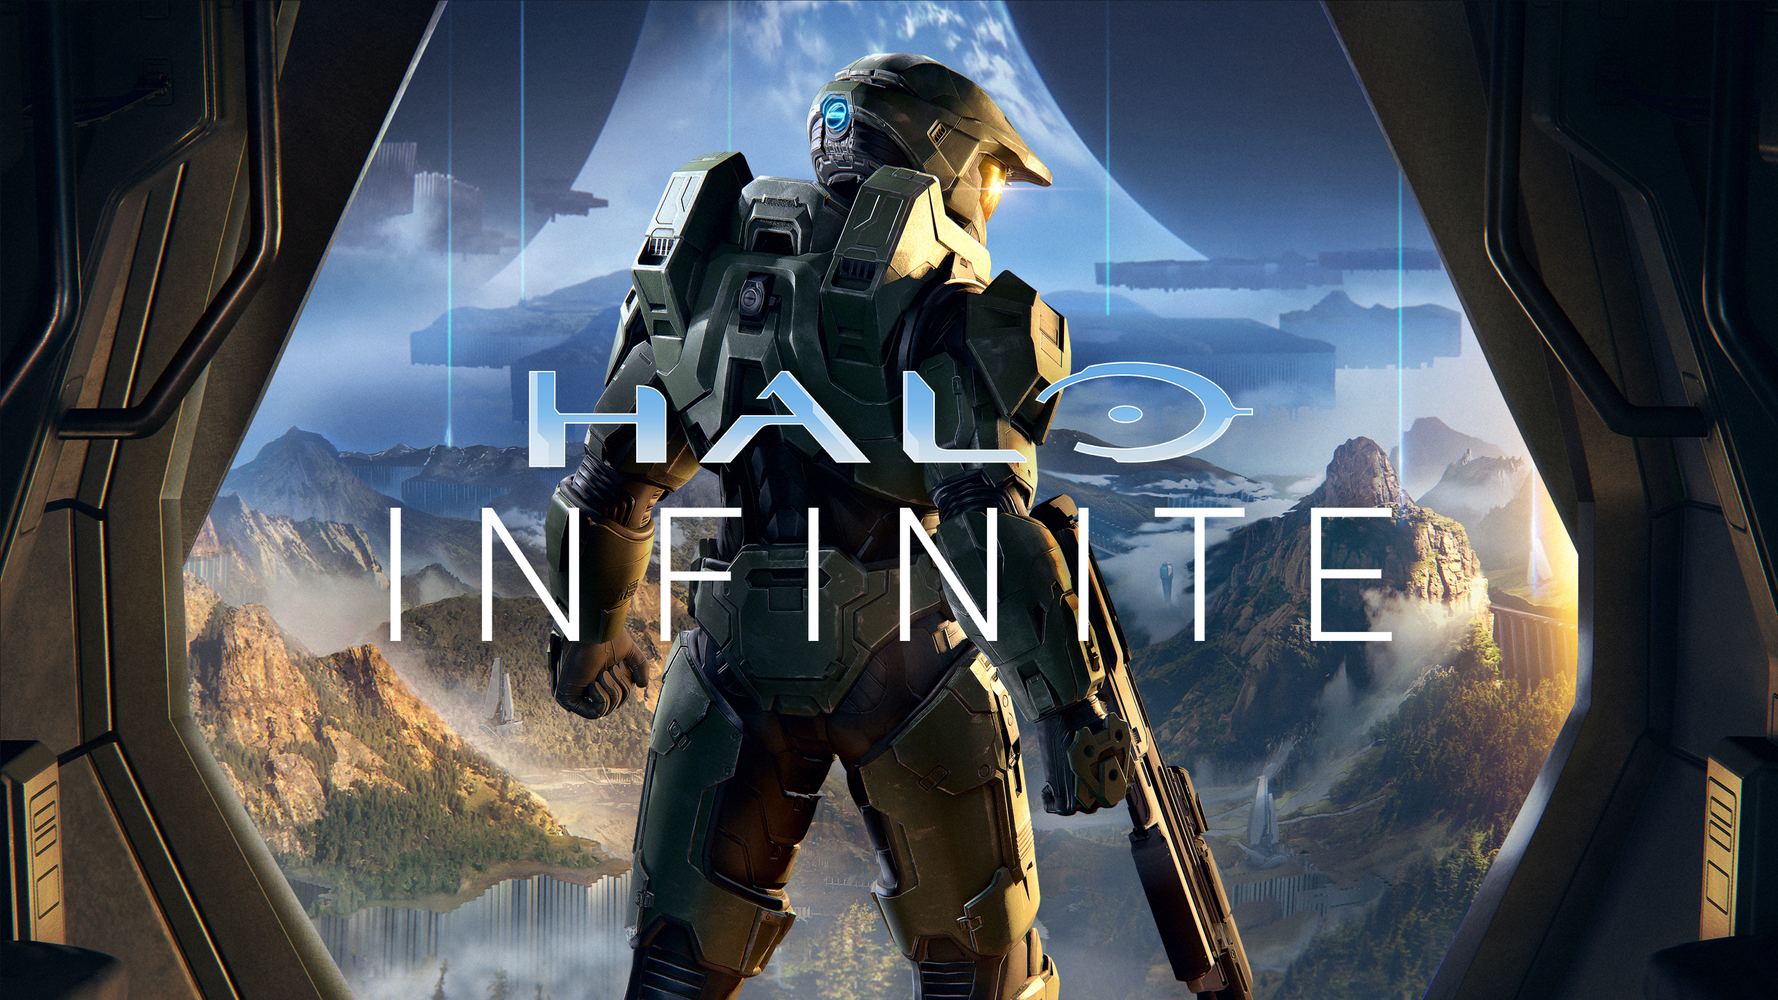 halo_infinite_wallpaper-desktop-wide_256